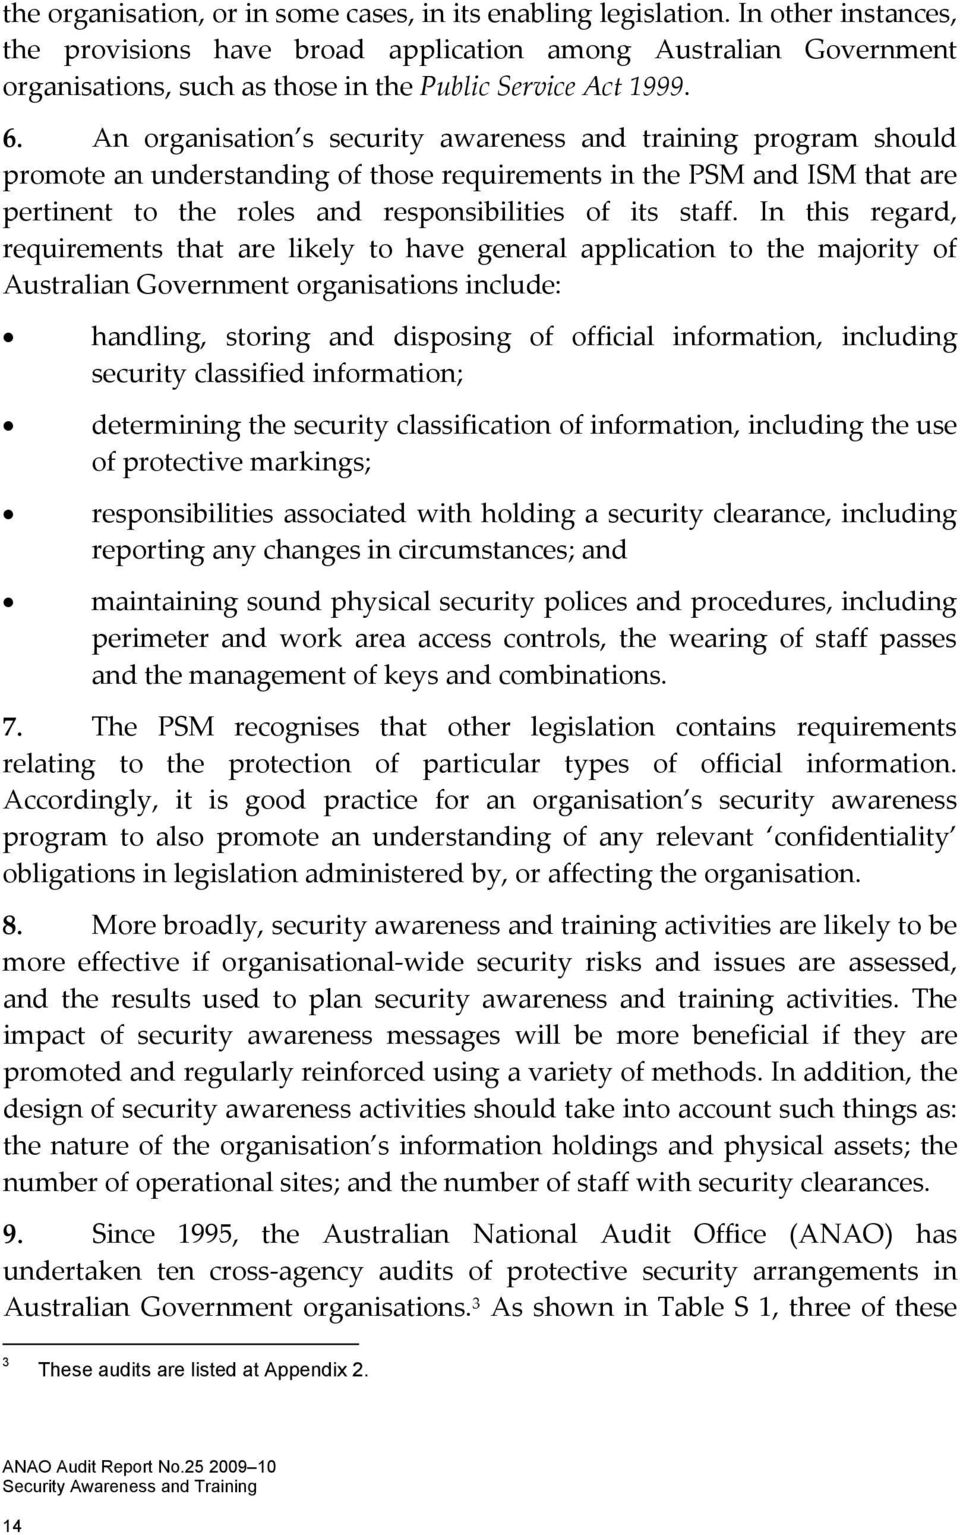 An organisation s security awareness and training program should promote an understanding of those requirements in the PSM and ISM that are pertinent to the roles and responsibilities of its staff.